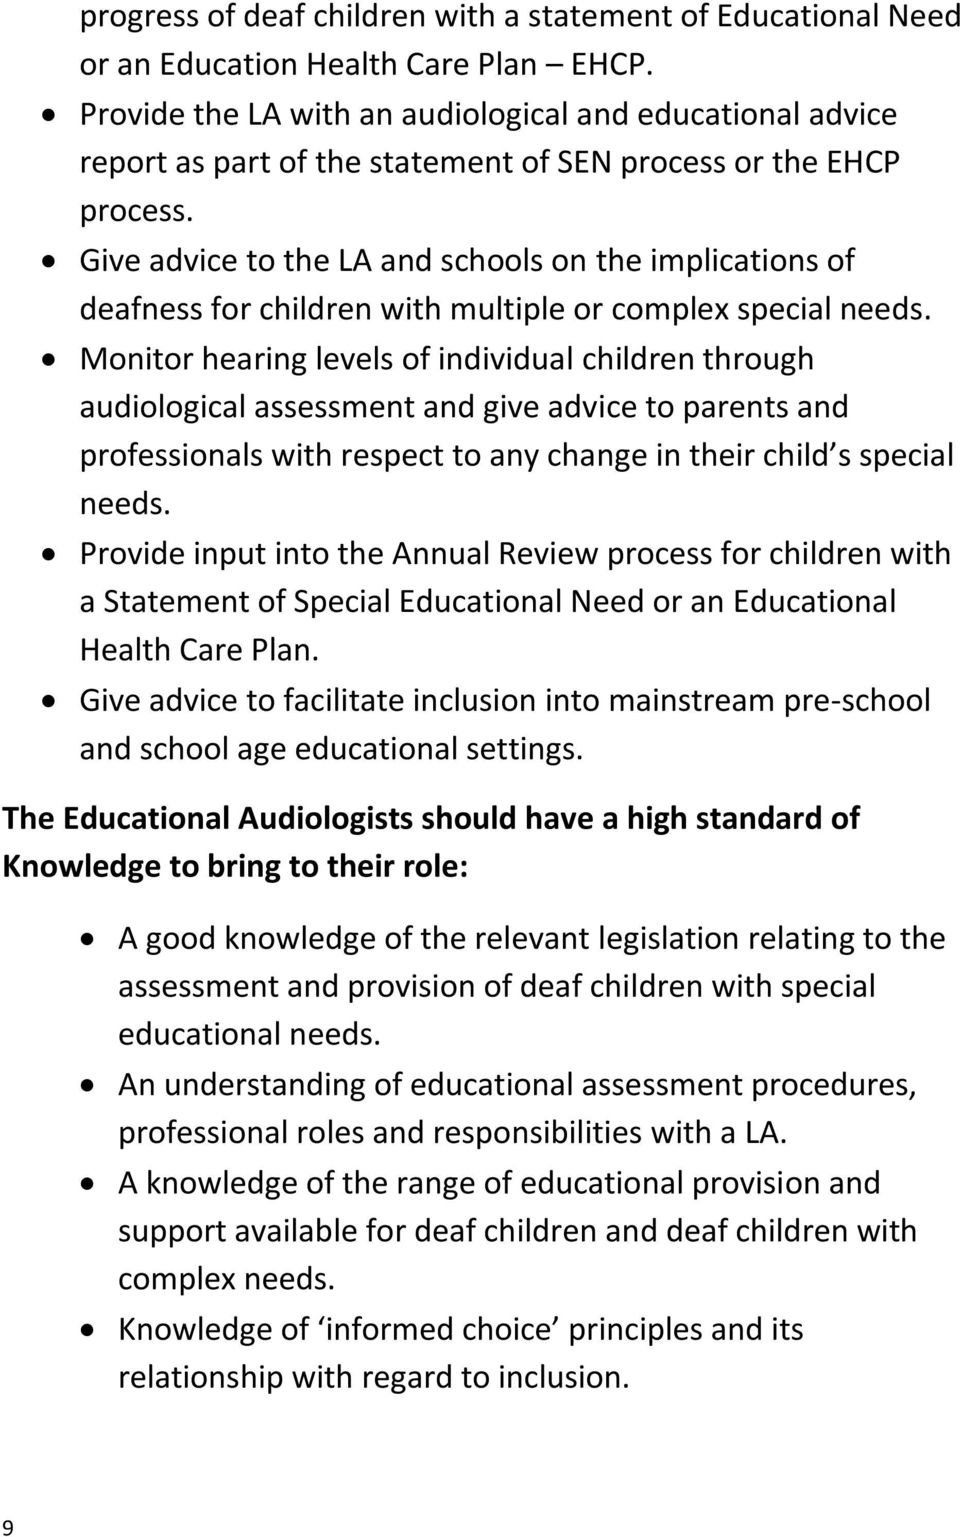 Give advice to the LA and schools on the implications of deafness for children with multiple or complex special needs.